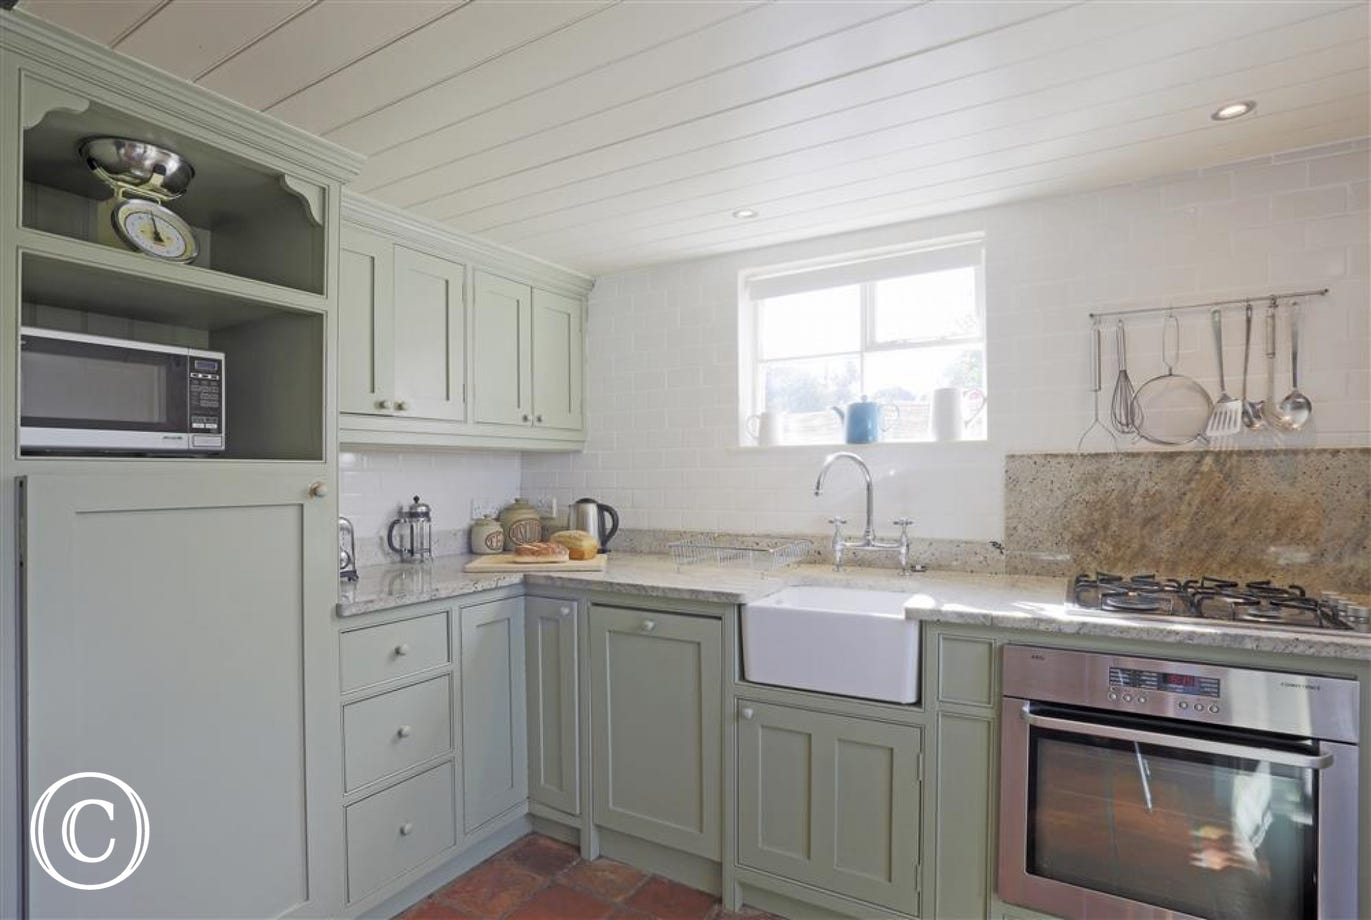 These sage green coloured kitchen units add to the countryside chic feel of the cottage.